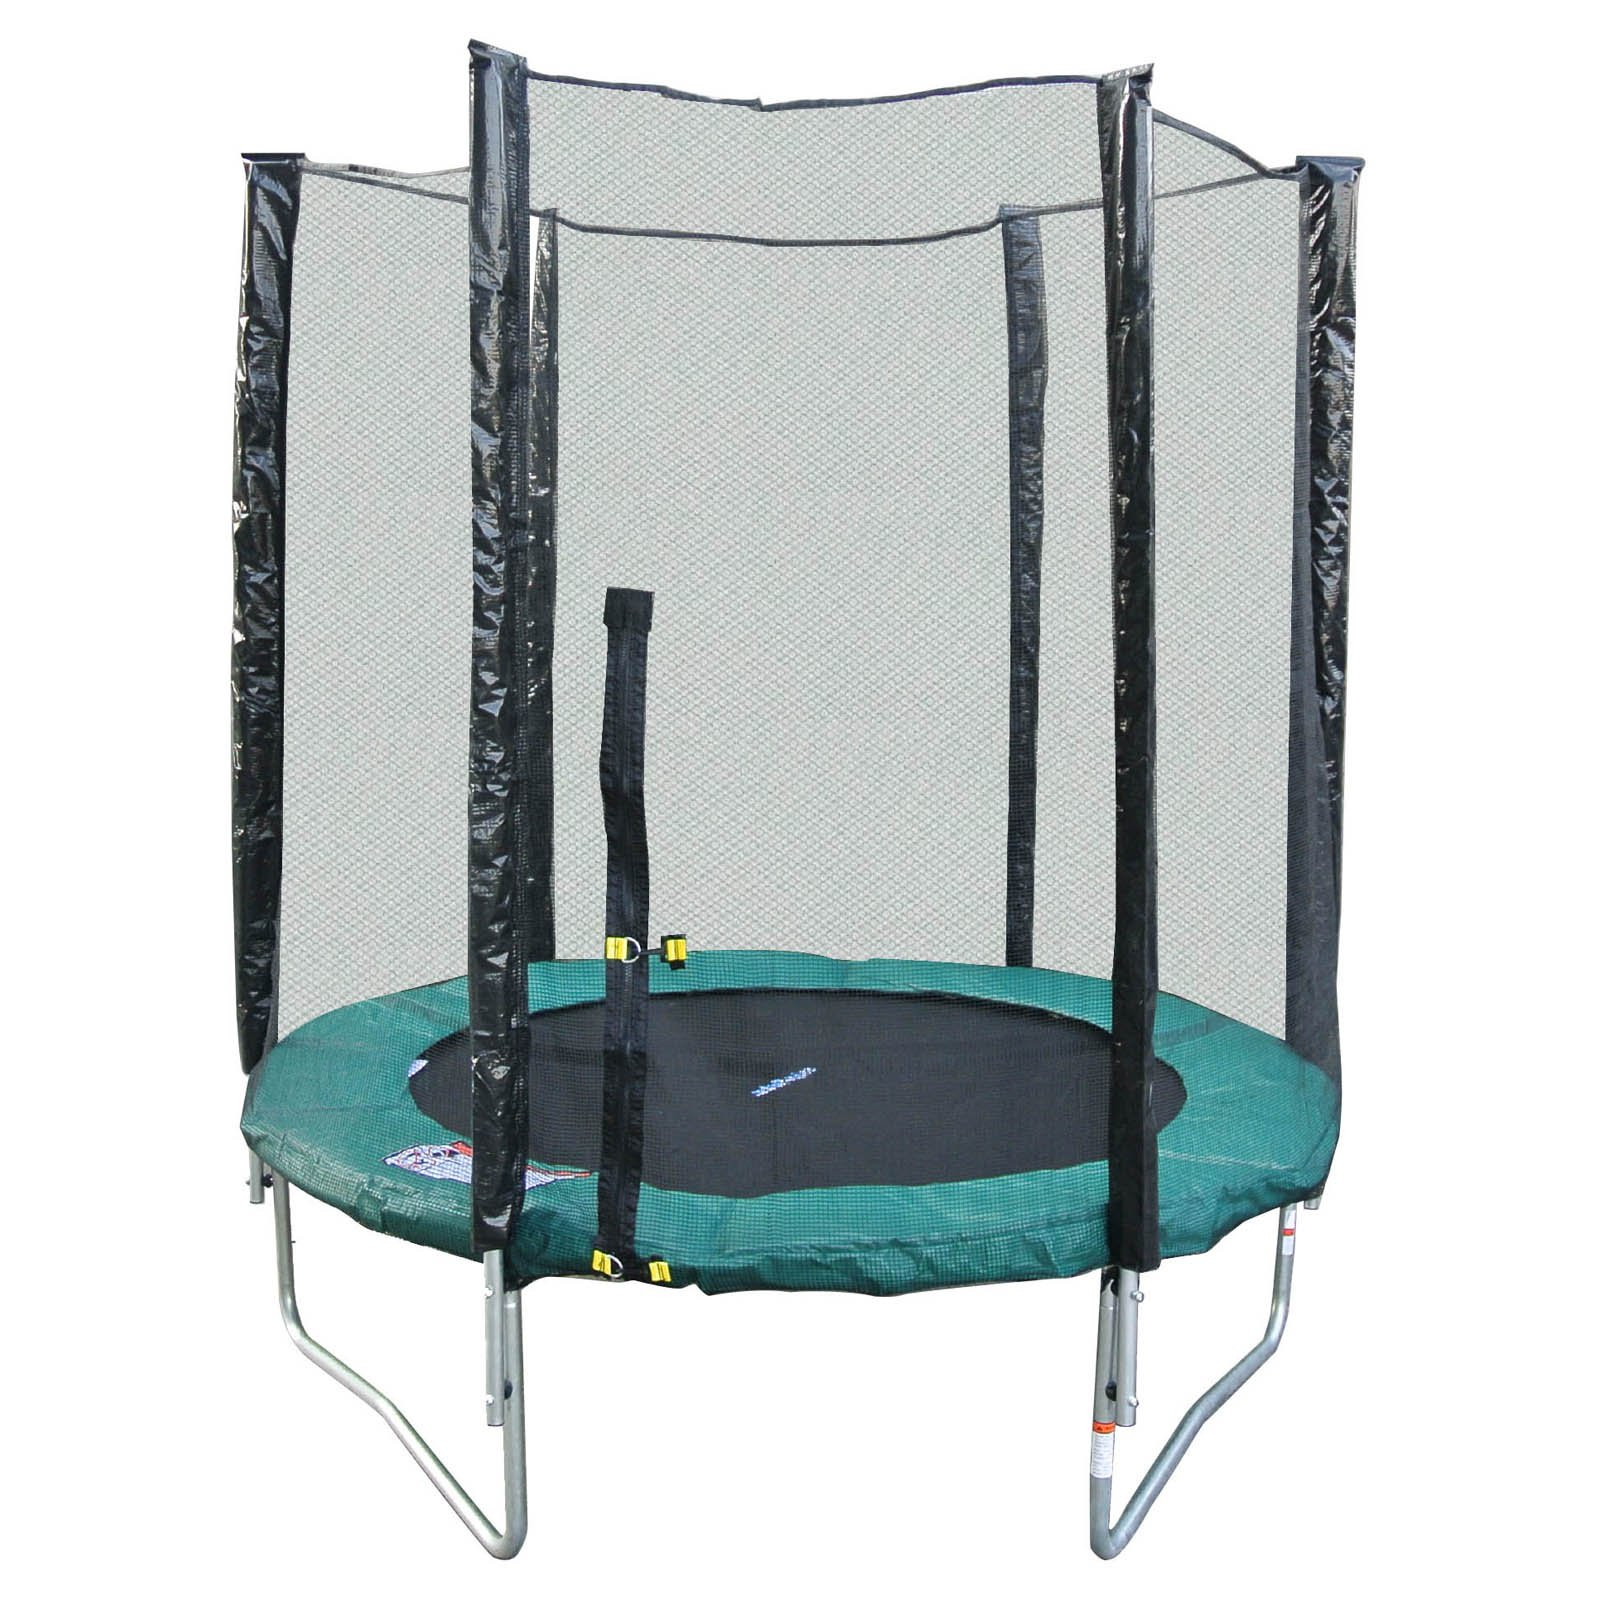 Super Jumper 6 ft. Trampoline with Enclosure by Overstock